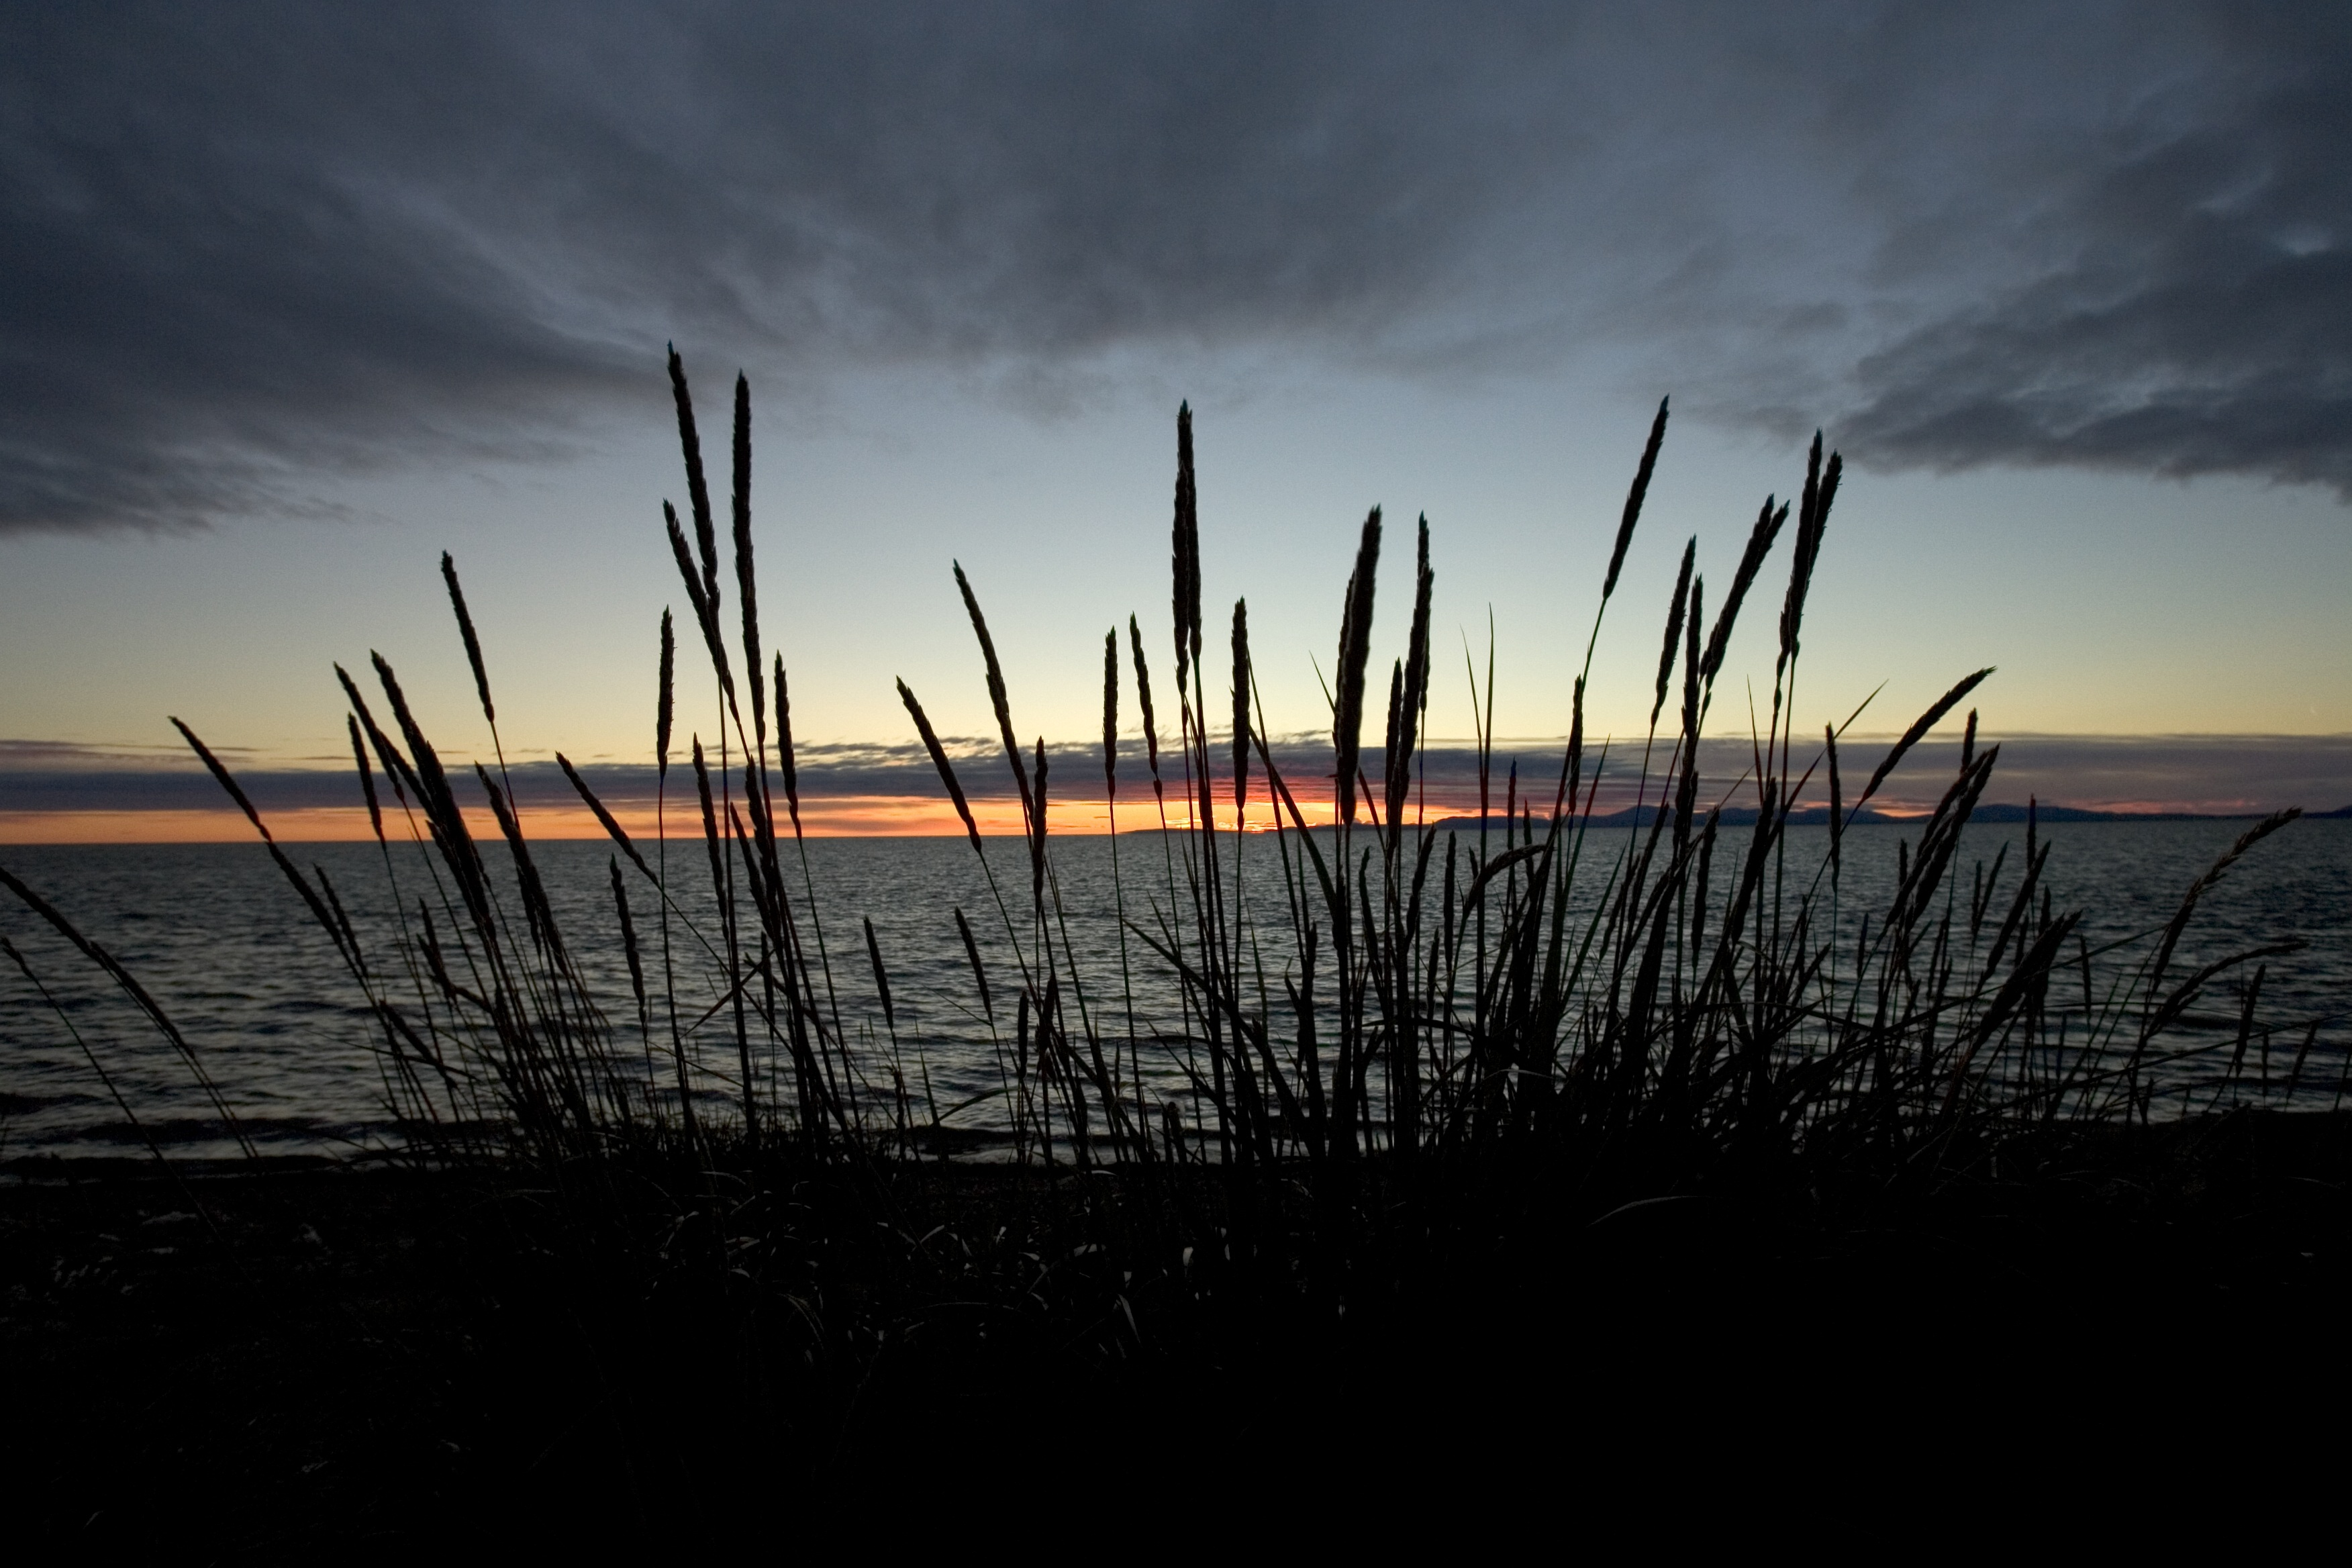 Grass on the shore photo